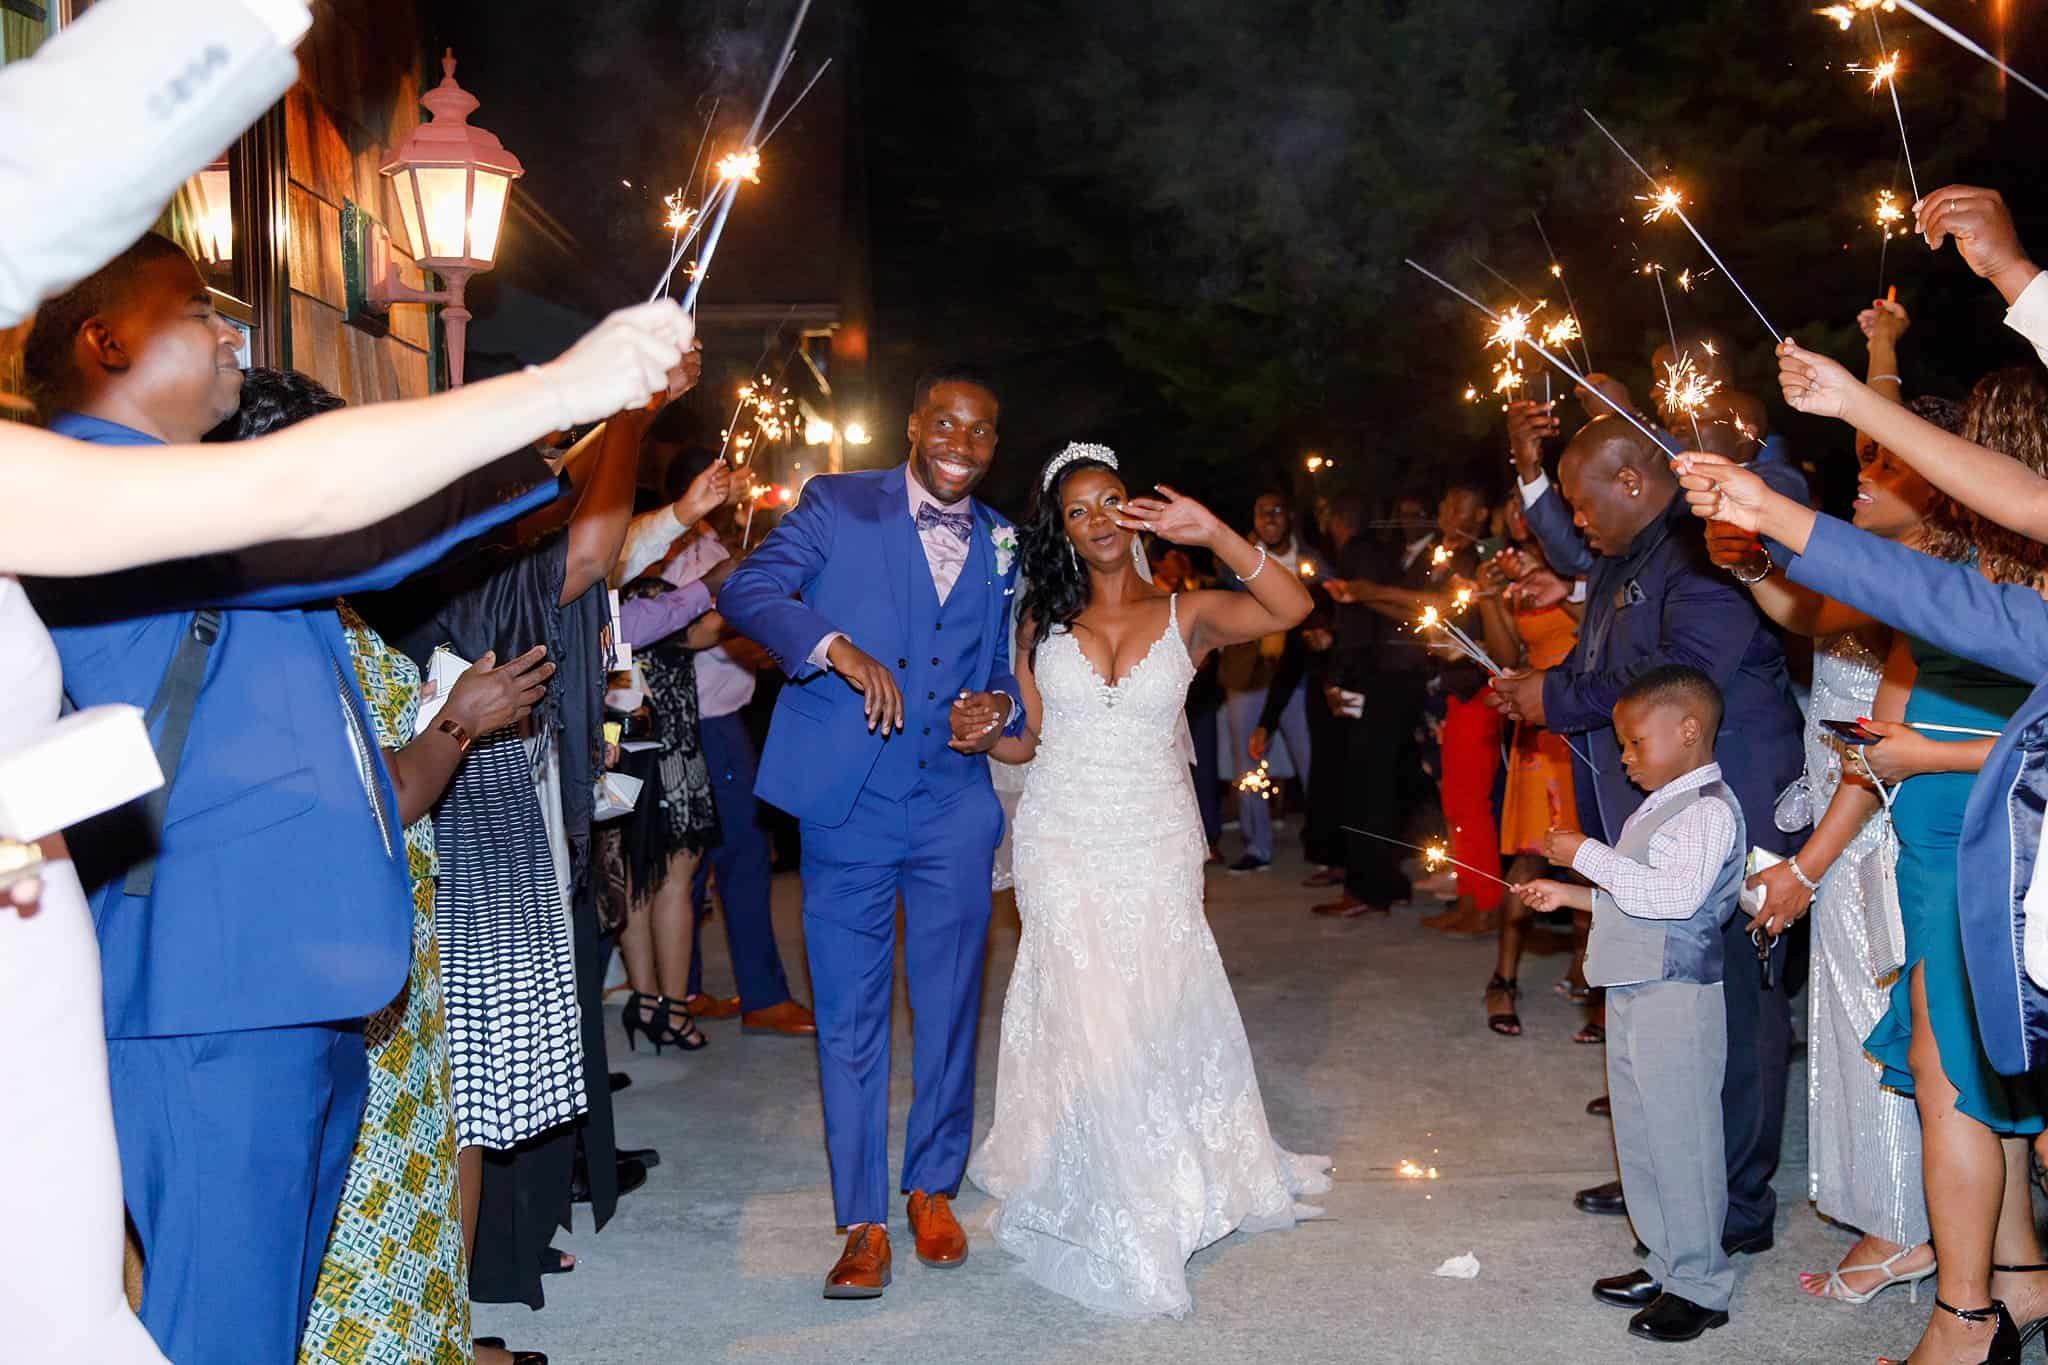 Bride and Groom departing wedding reception as guests hold sparklers